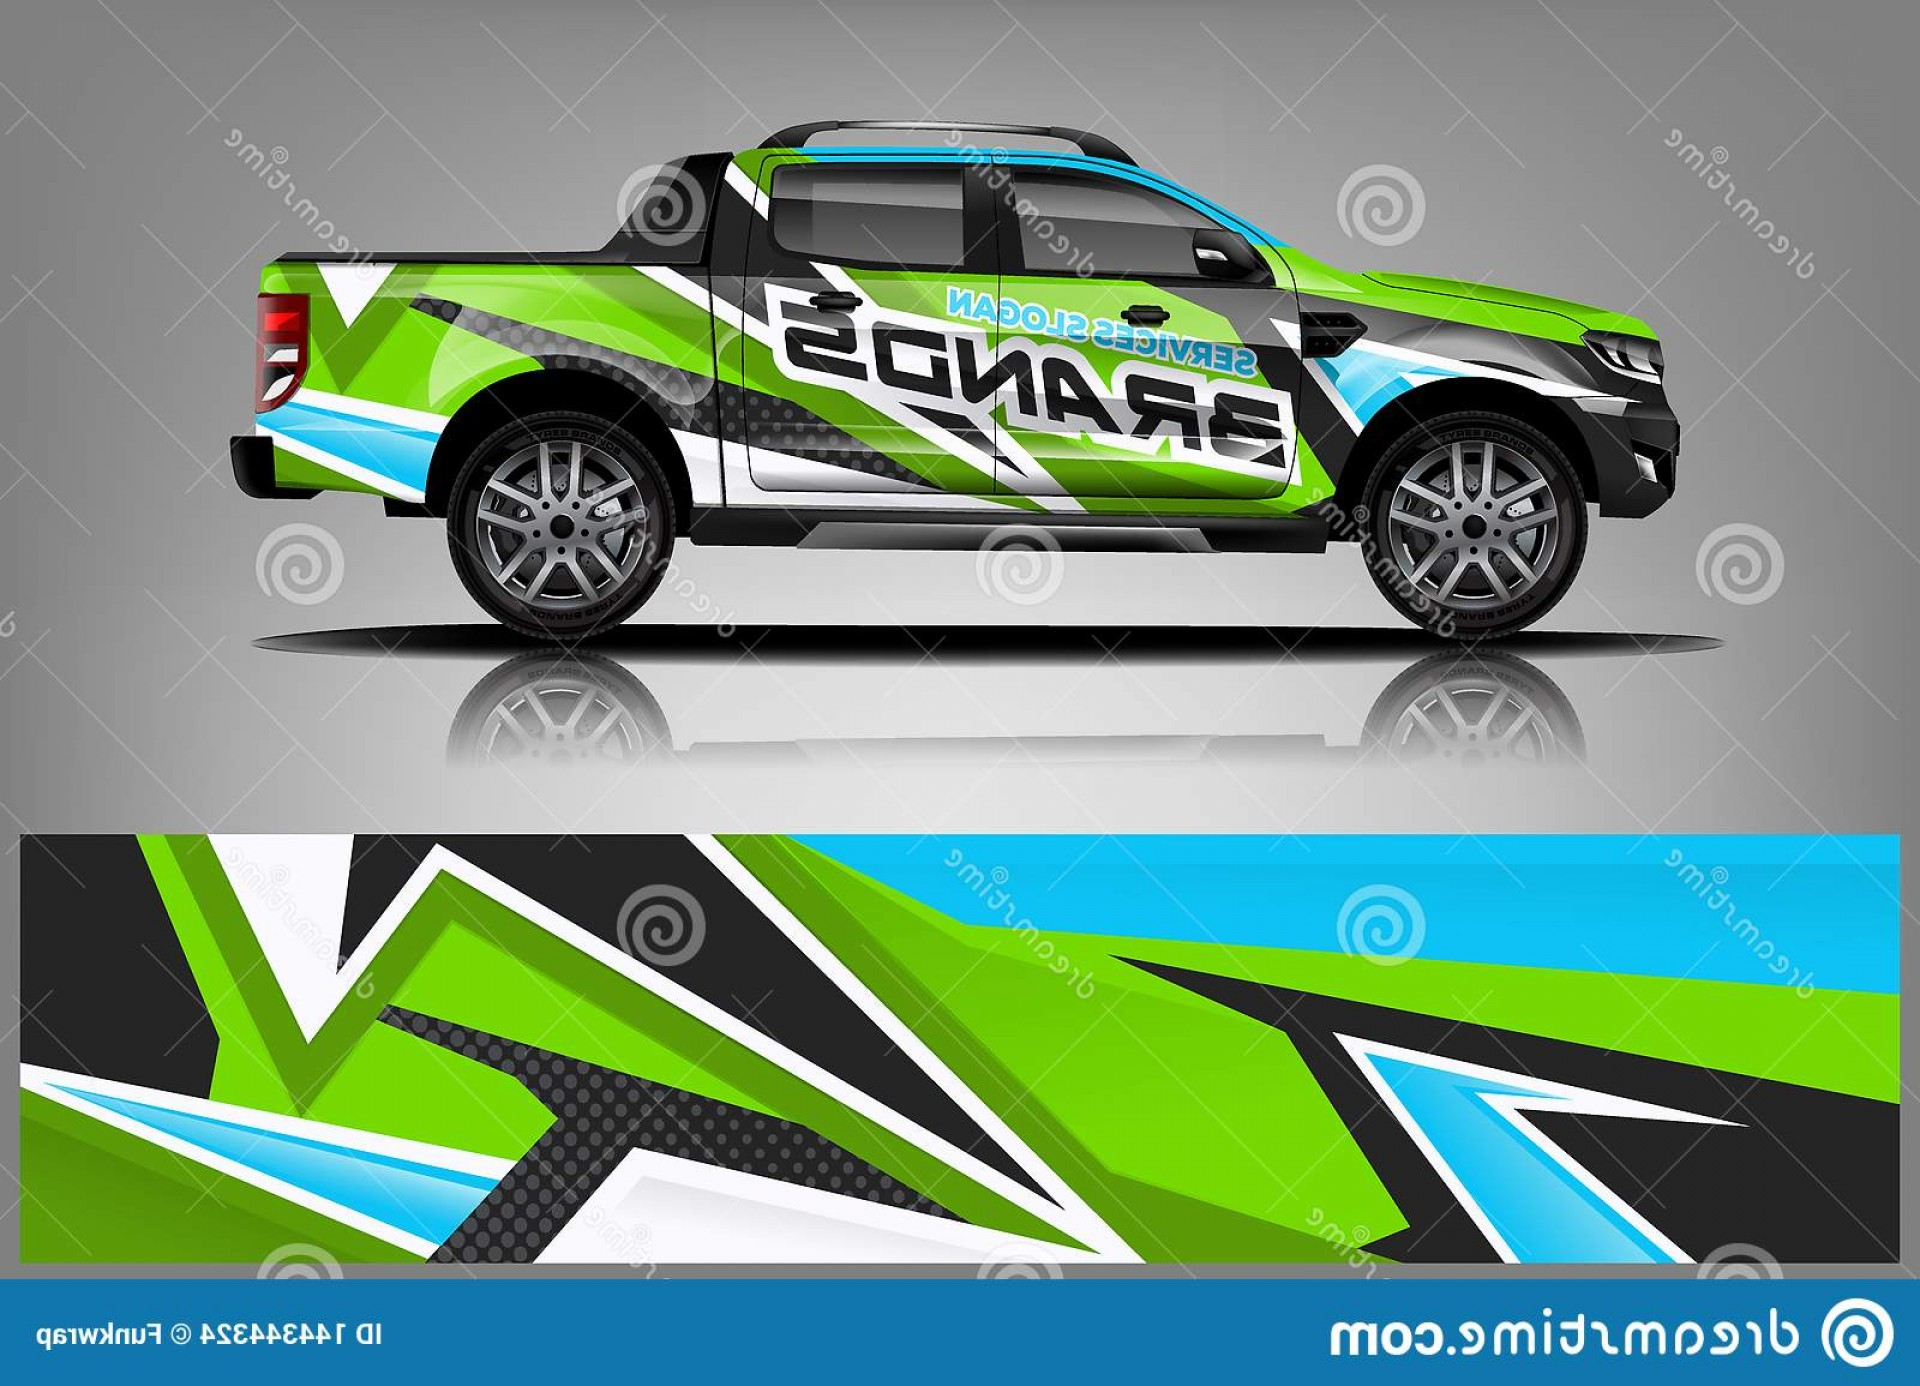 Vector Car Wrapped: Truck Wrap Design Sticker Decal Company Vector Format Image